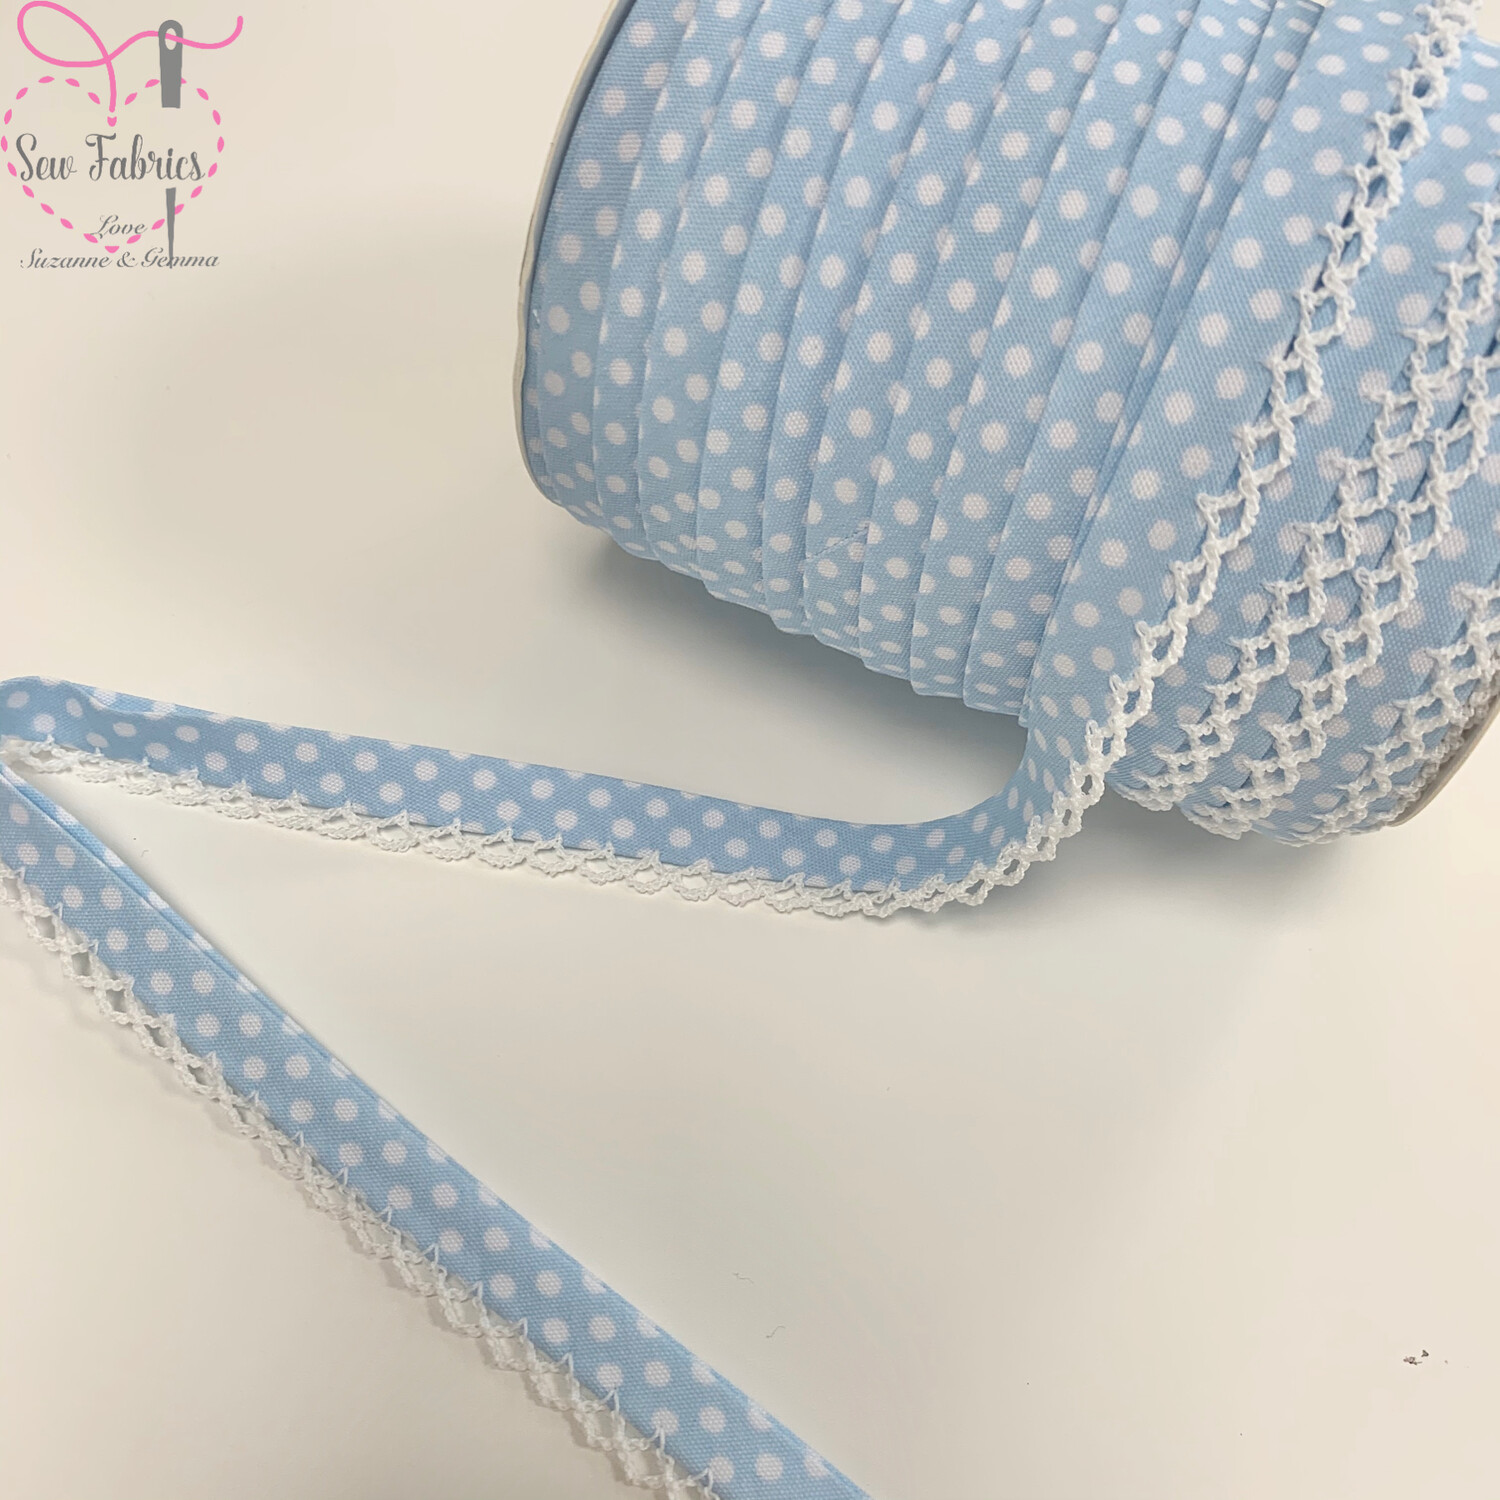 12mm Pale Blue with White Polka Dots Pre-Folded Bias Binding with Lace Edge x 25mts Reel